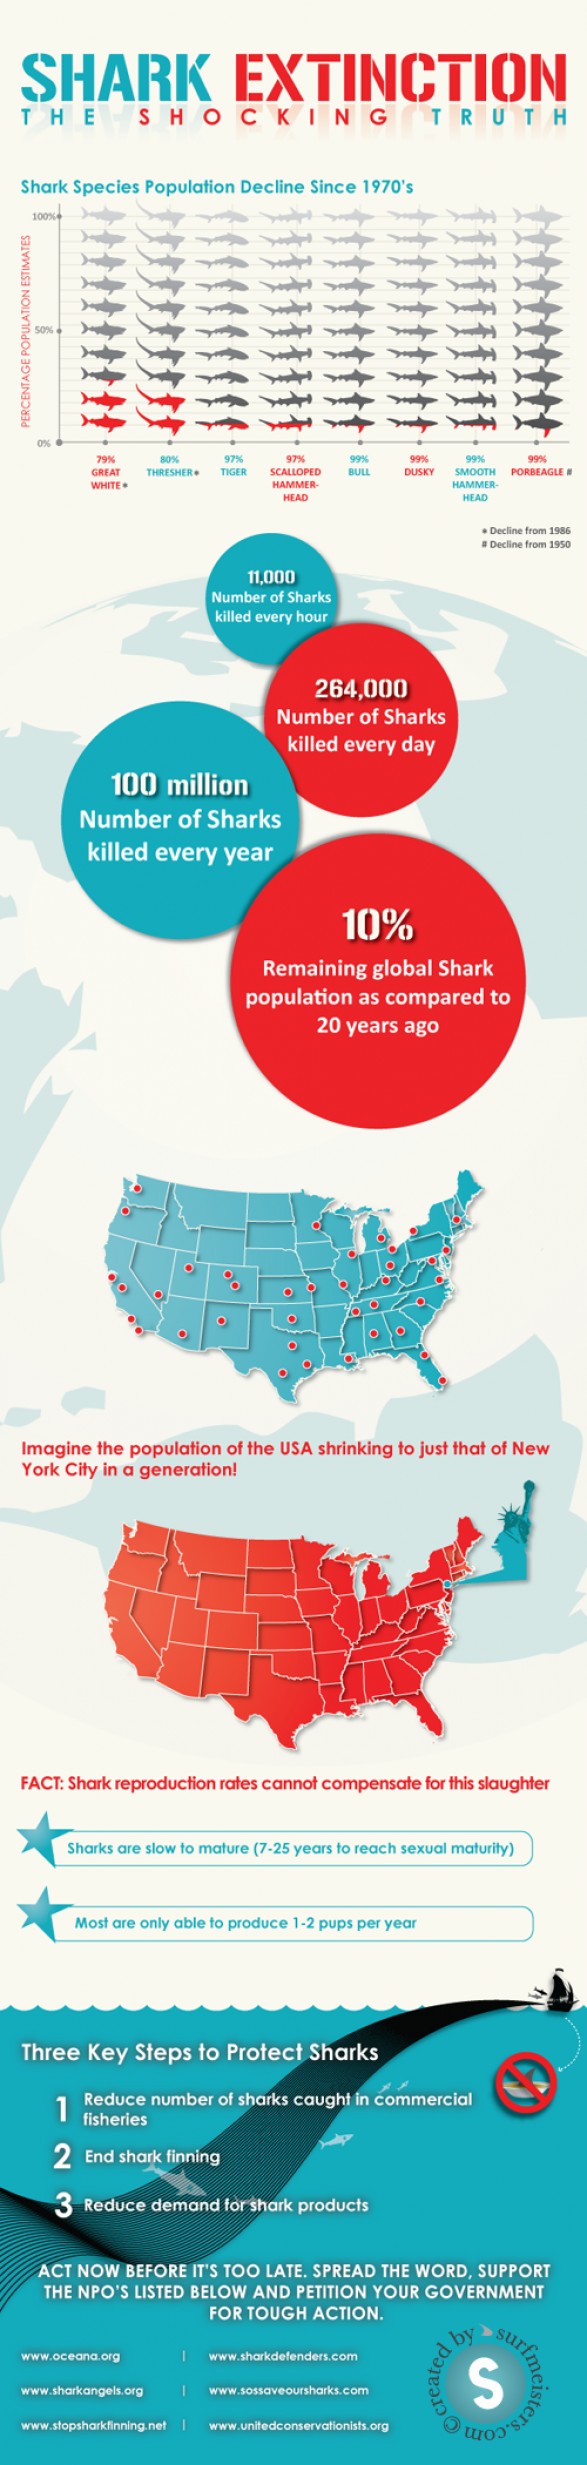 Shark Extinction